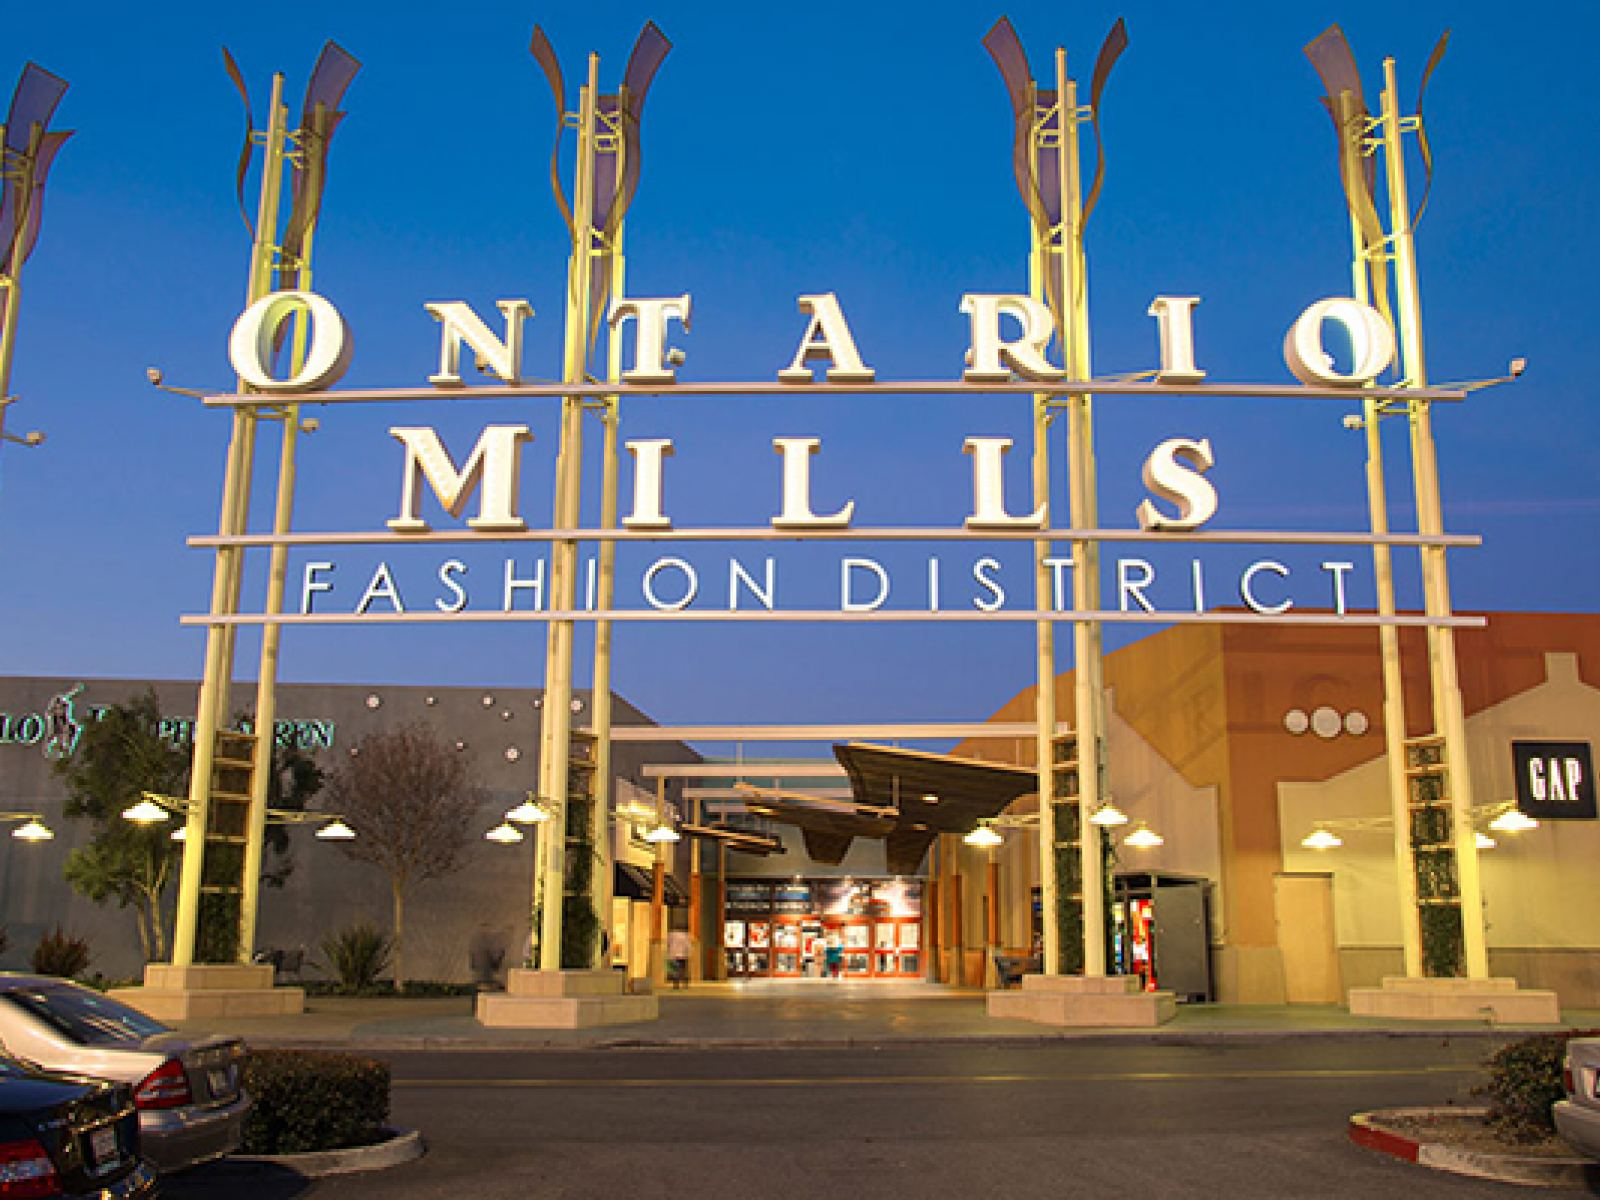 Main image for article titled Compras em Los Angeles: Ontario Mills